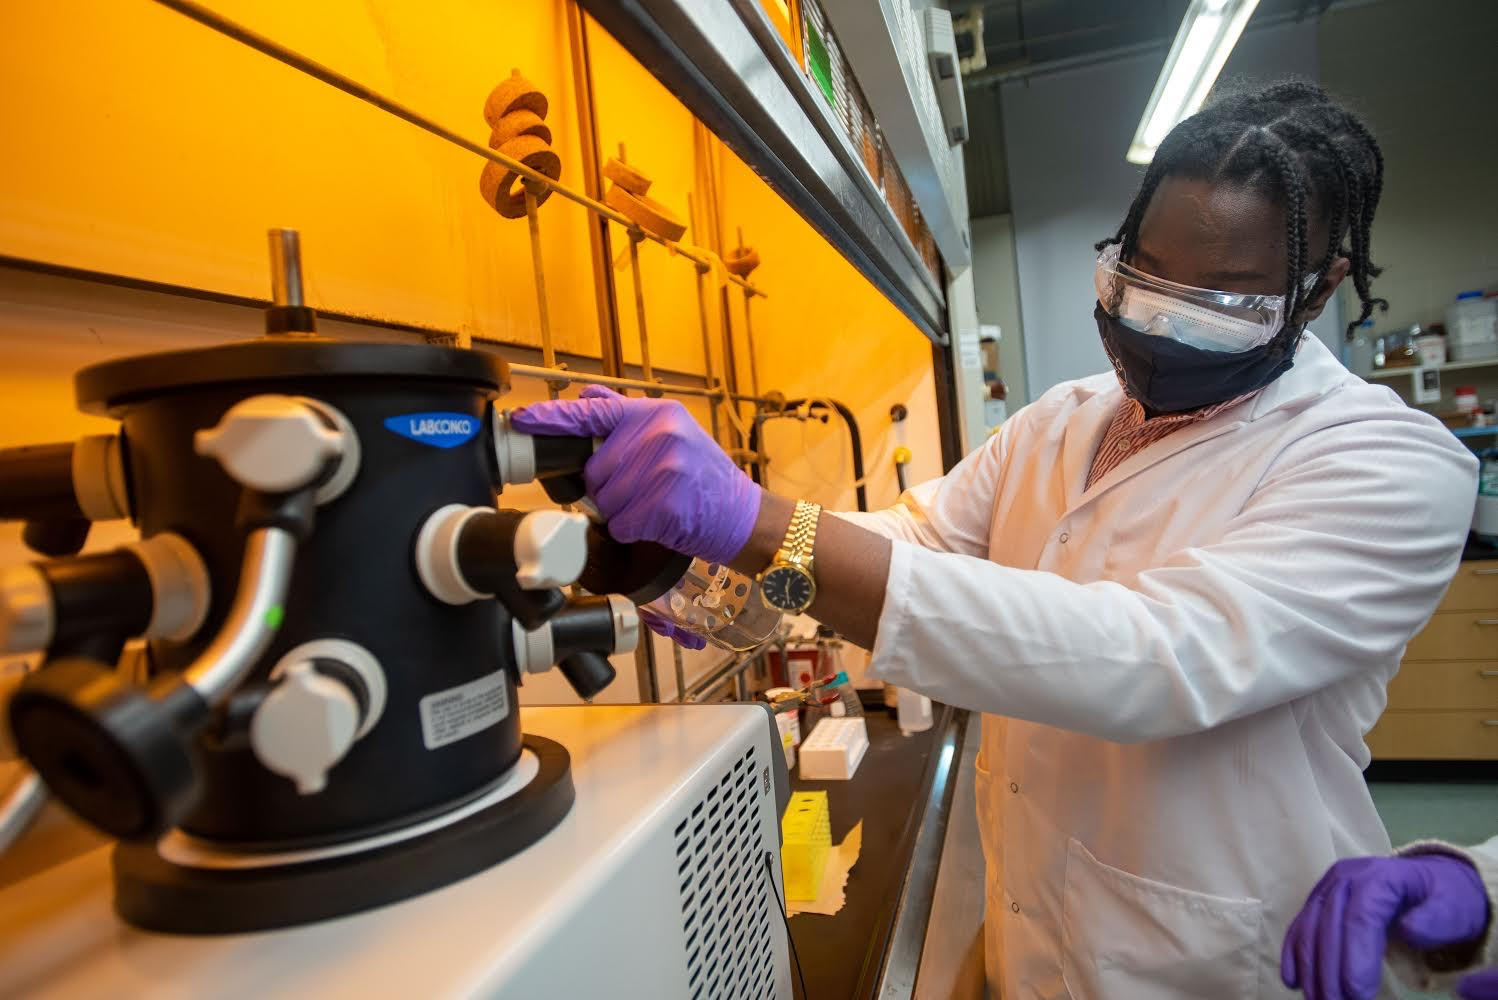 Nichali Bogues conducts an experiment wearing face masks and goggles in his lab.